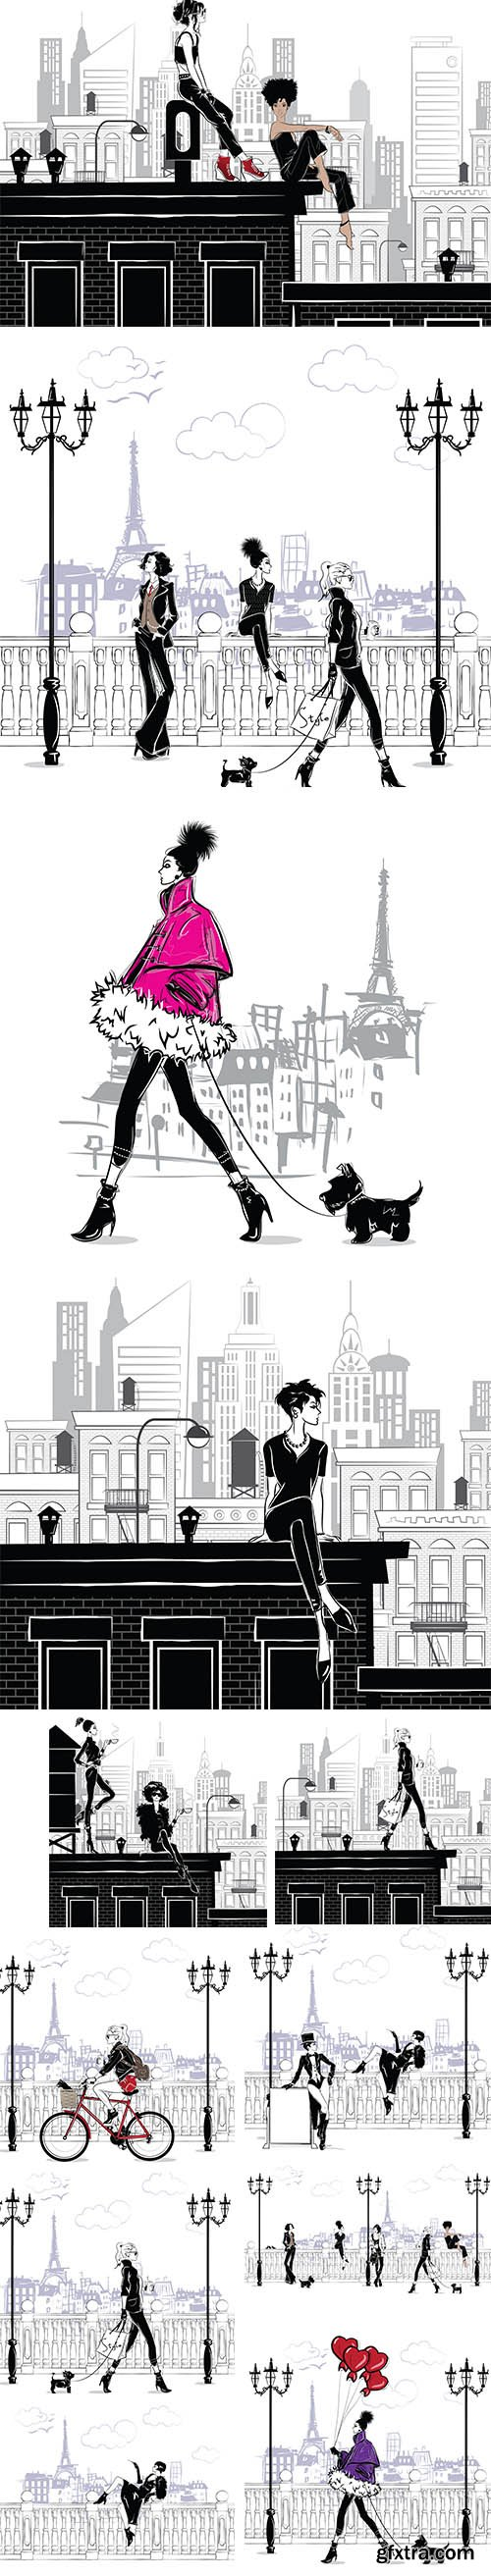 Fashion Girls in the City Style Sketch Illustrations